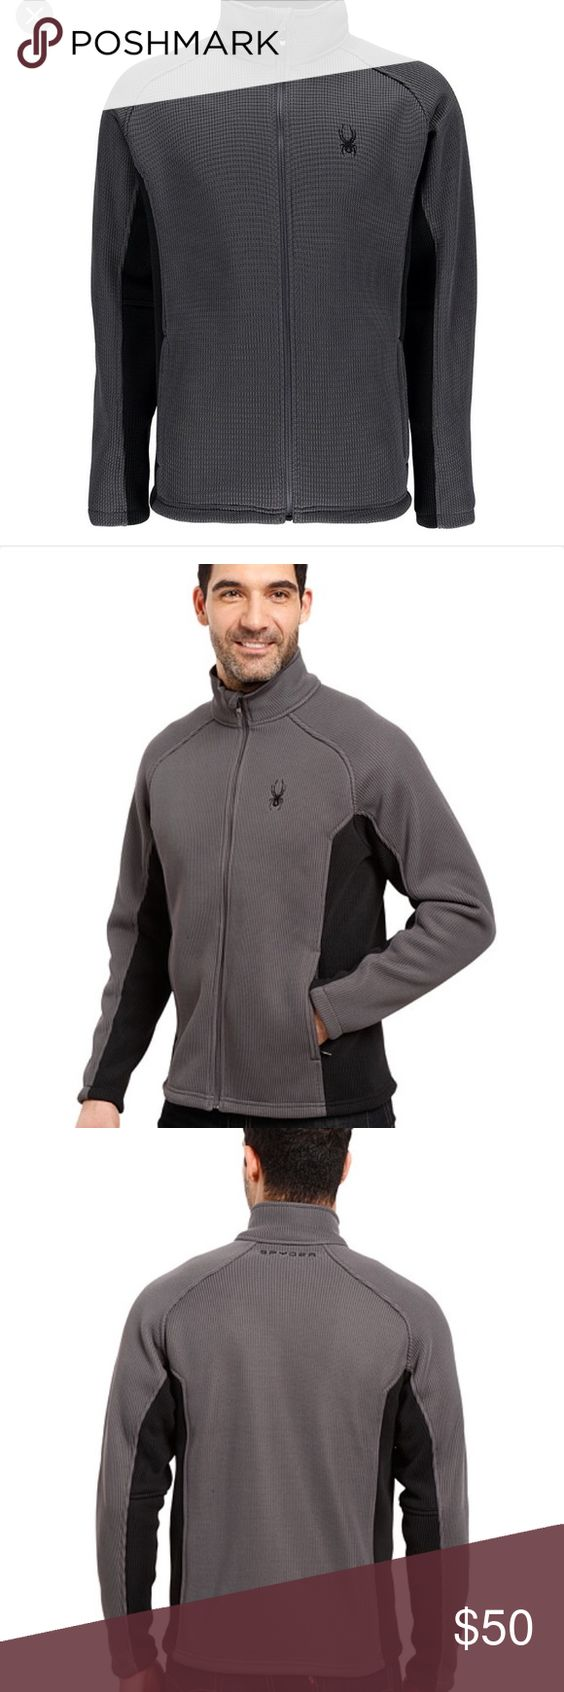 Spyder Foremost jacket In good condition heavy core spyder foremost jacket Spyder Jackets & Coats